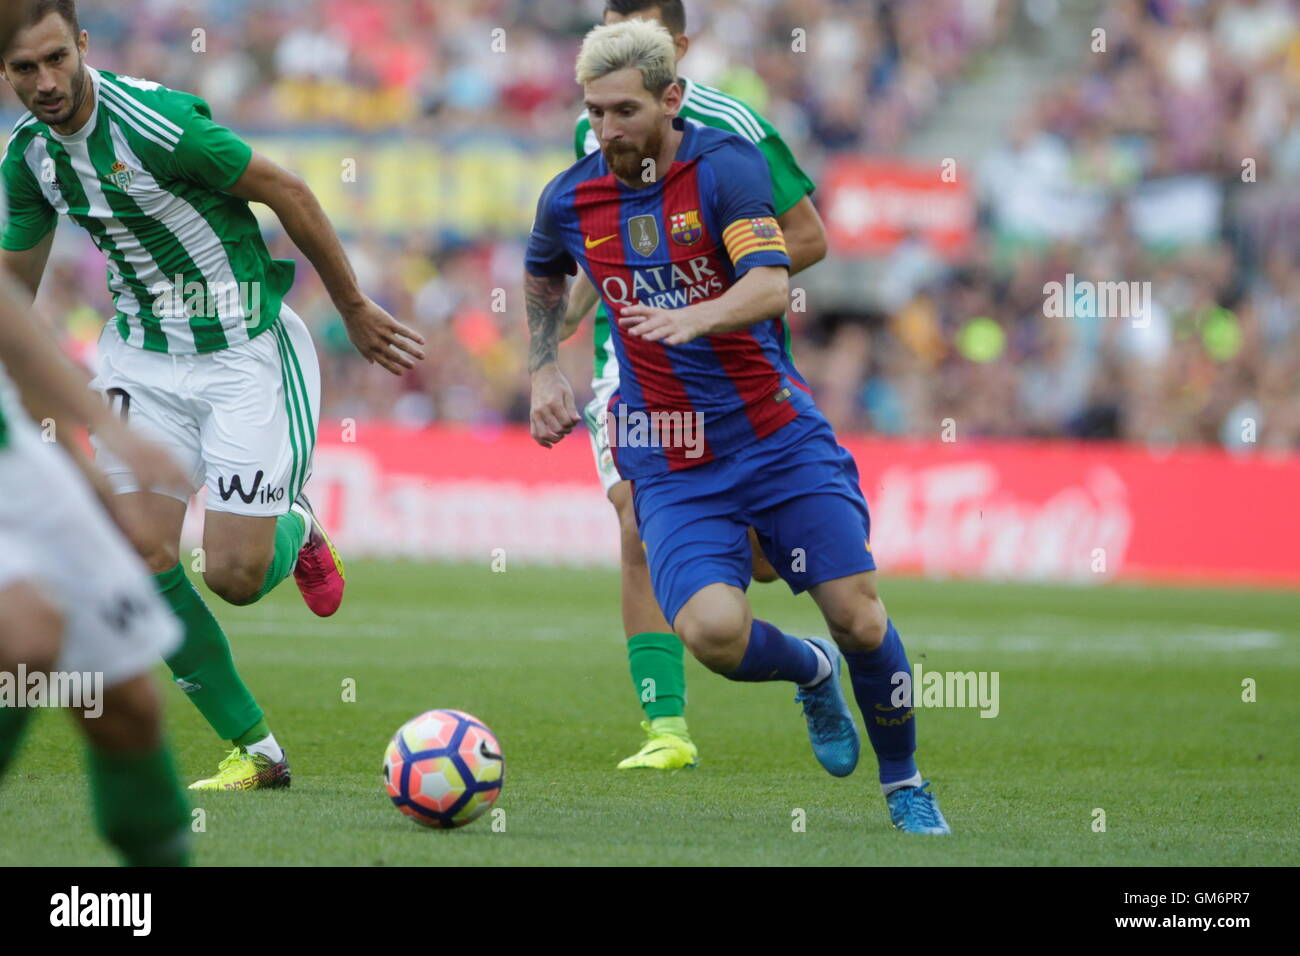 08/20/2016. Camp Nou, Barcelona, Espagne. Lionel Messi en action pendant le match de Liga espagnole FC Barcelone Photo Stock